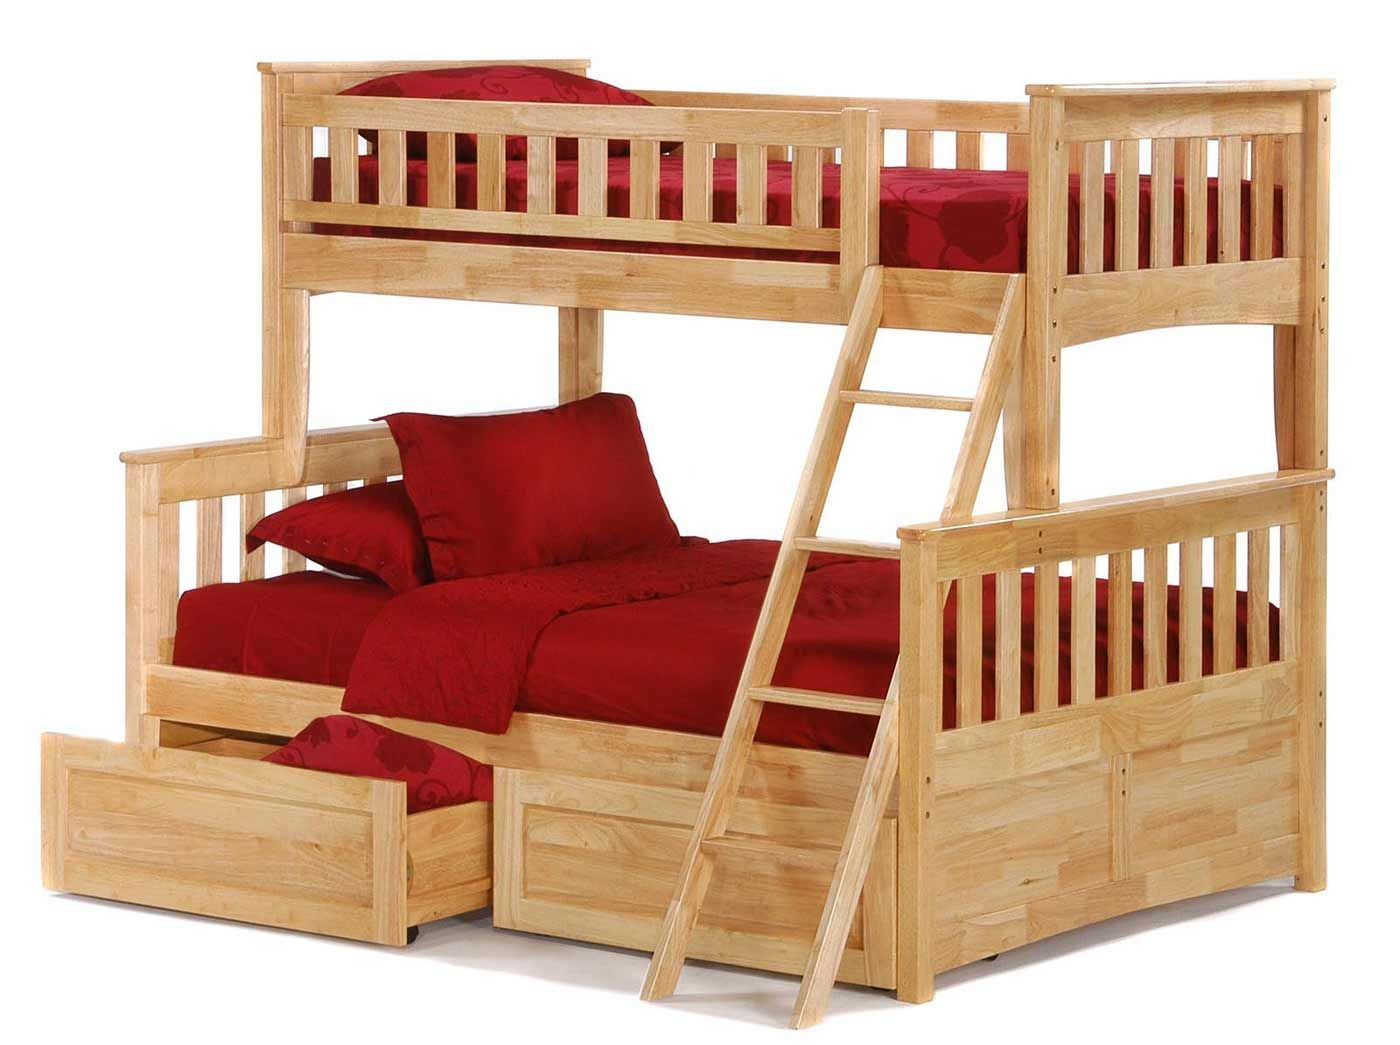 Best Twin Over Full Size Red Accent Bunk Beds Beach House 400 x 300